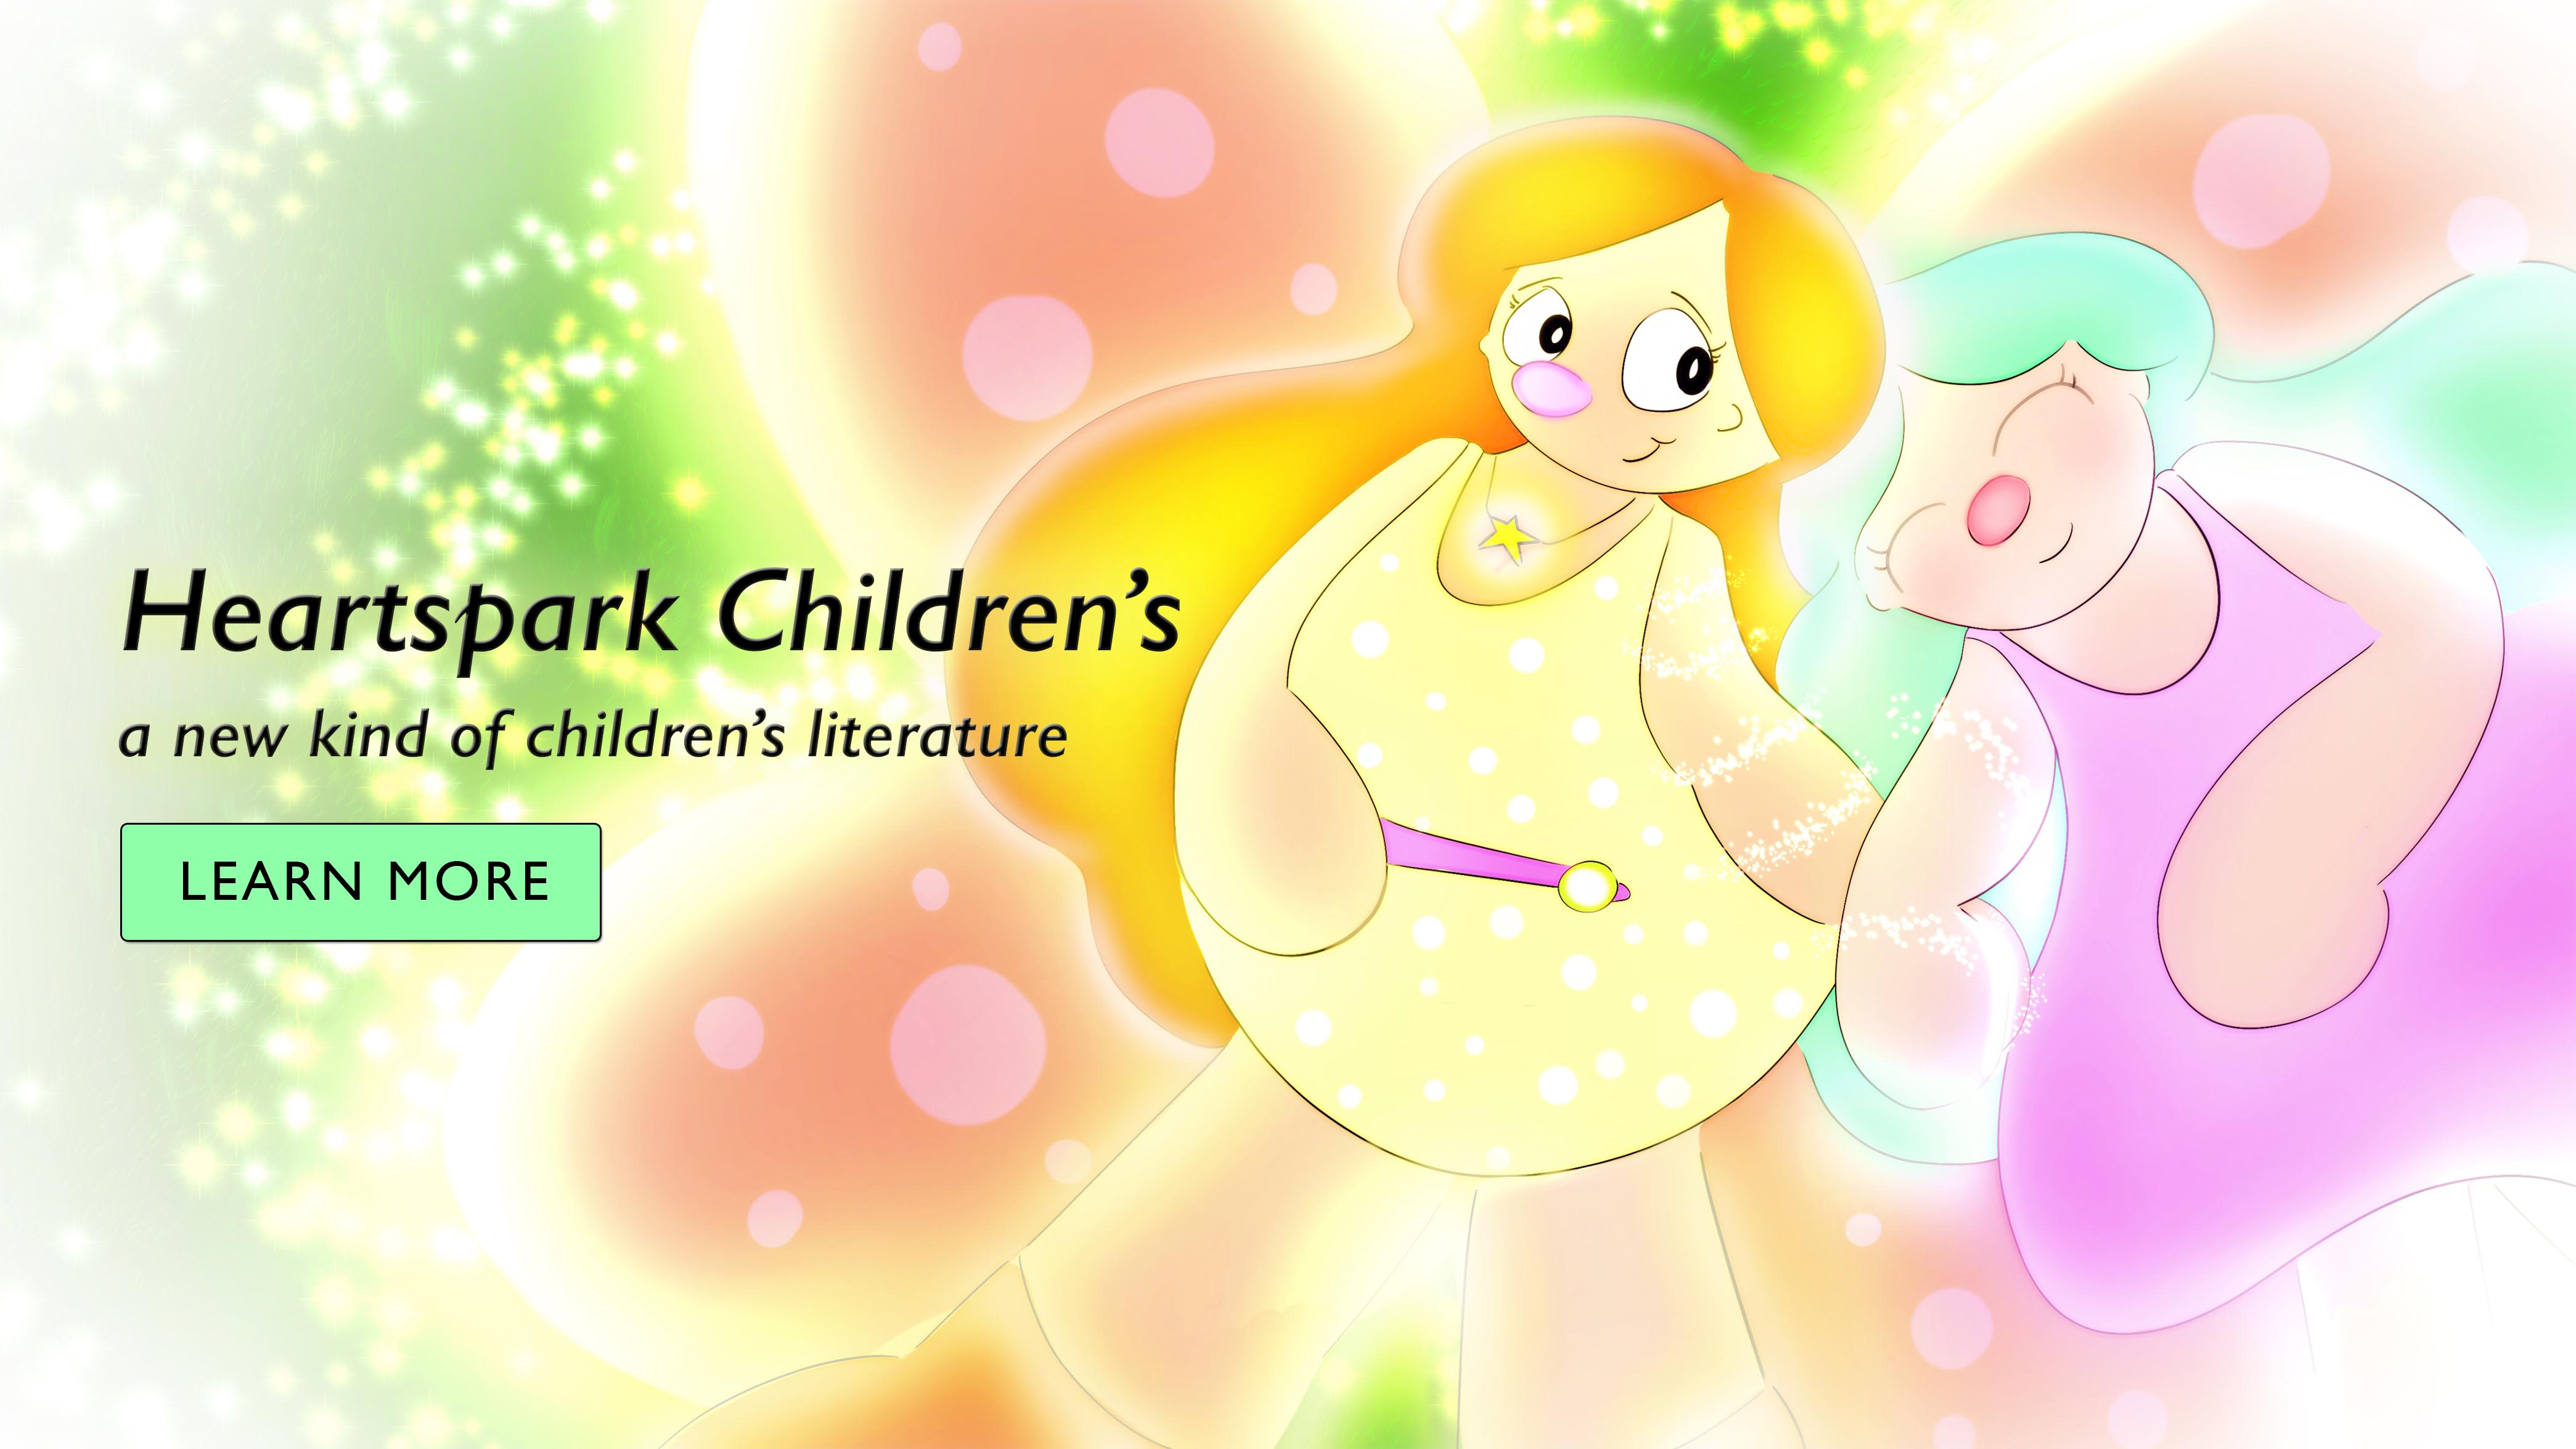 Heartspark Children's - a new kind of children's literature